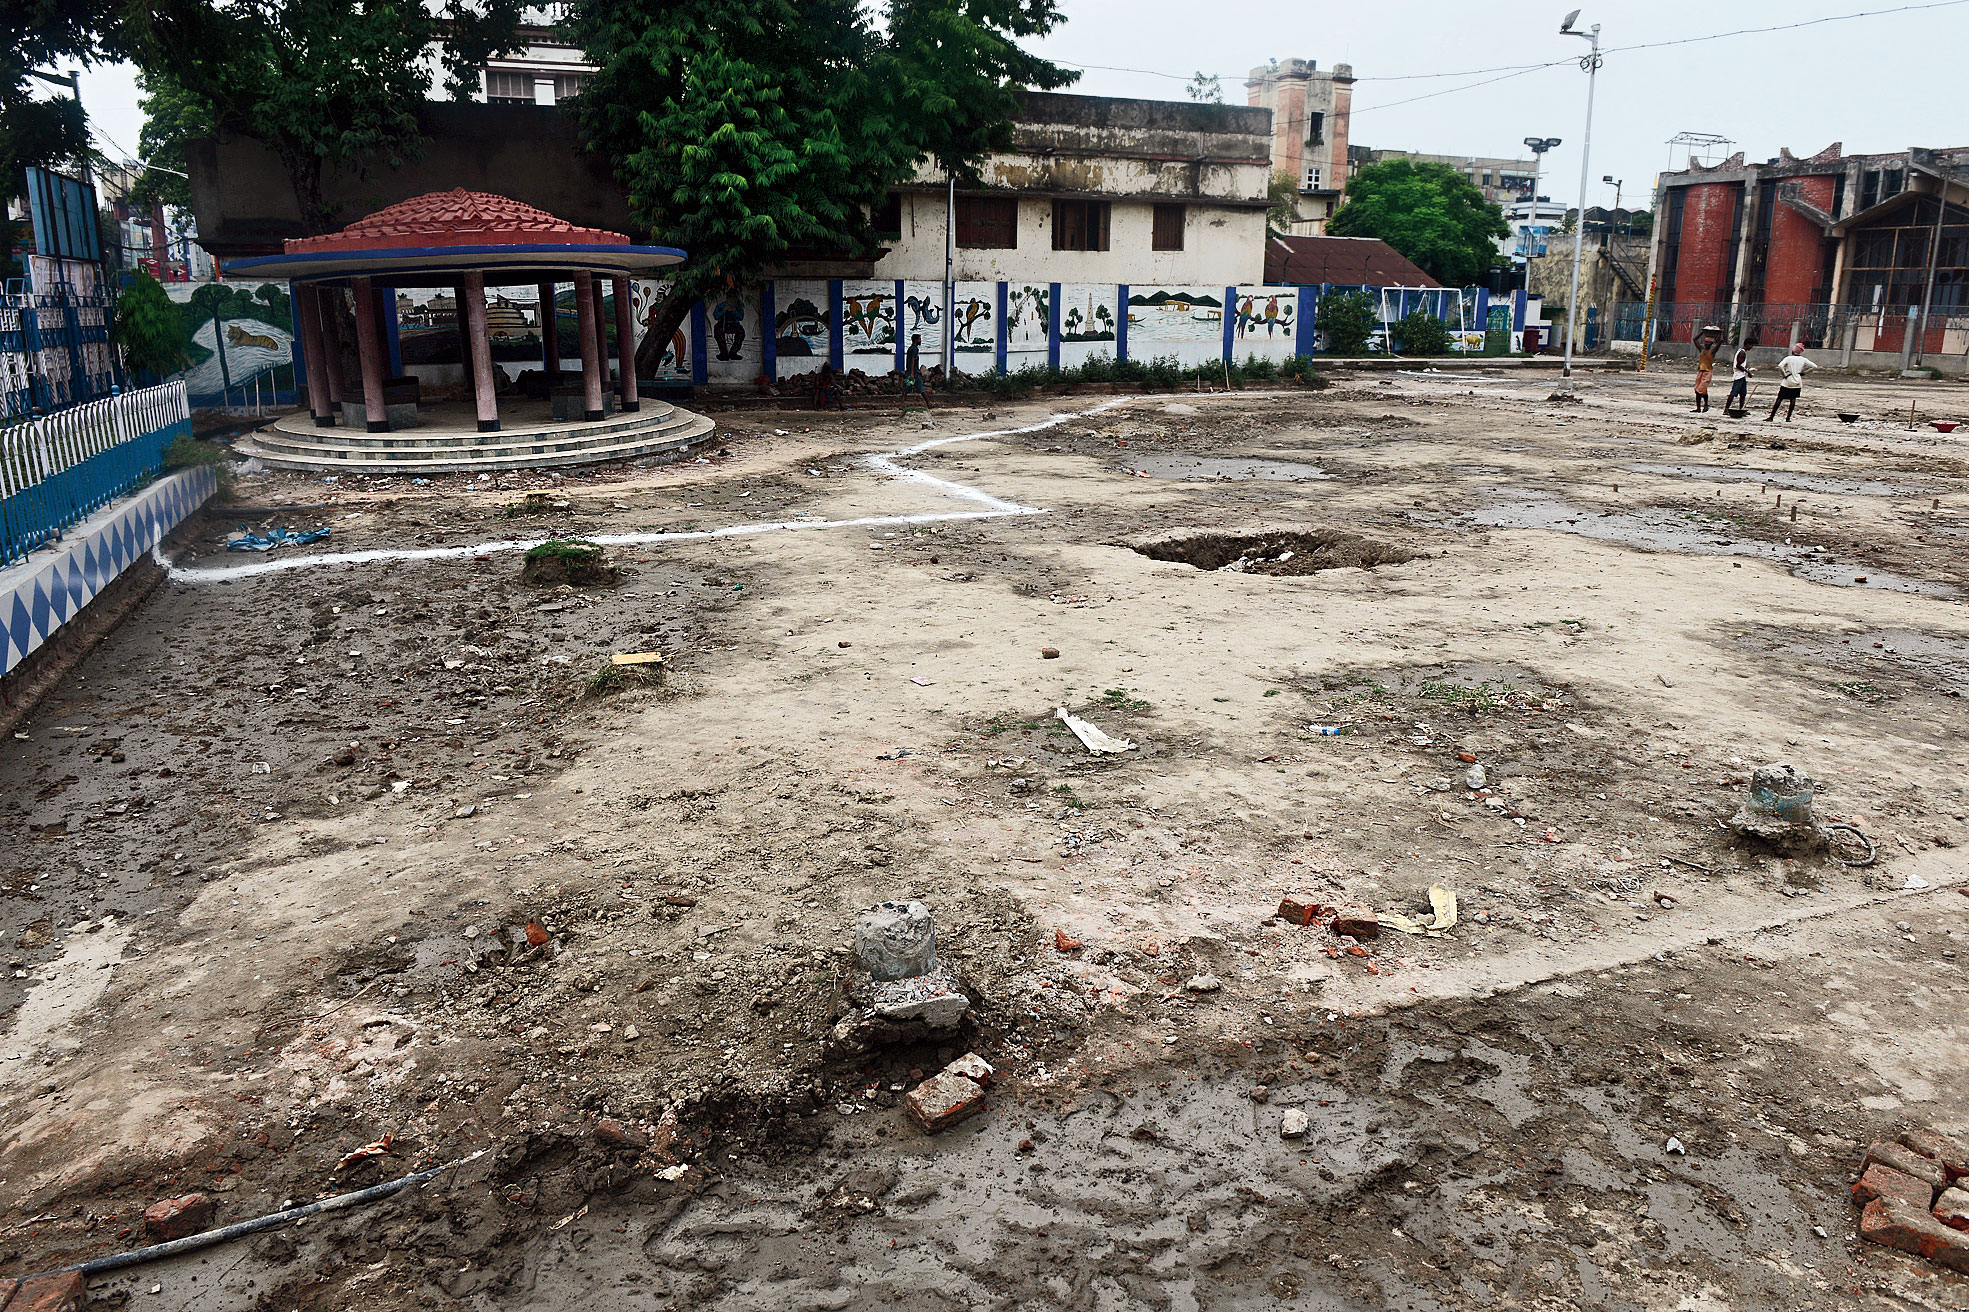 Durga Puja at Mohammad Ali Park is likely to be confined to the part of the ground that lies beyond the white line. That portion of the park does not have the crumbling reservoir under it